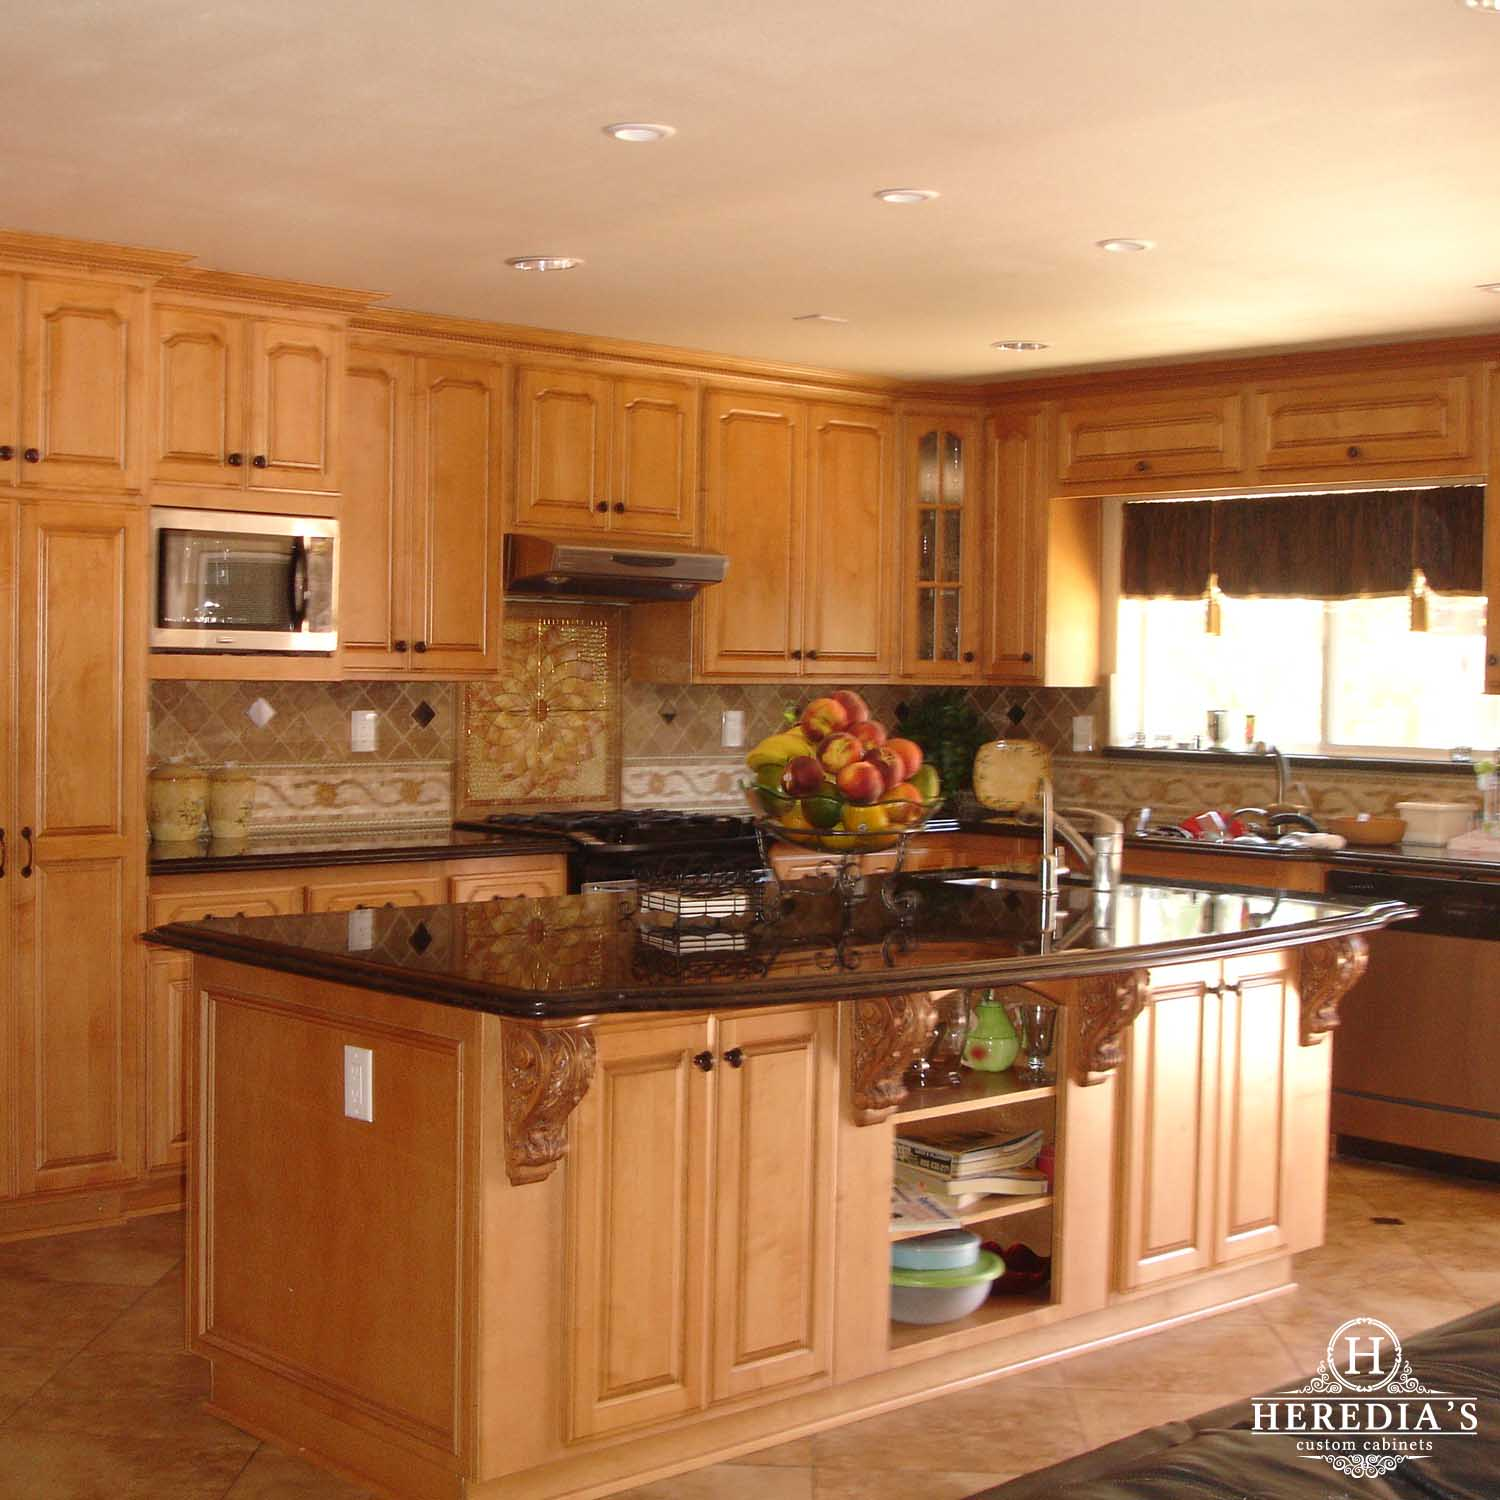 4 Ways To Personalize Your Kitchen Cabinets: Custom Kitchen Cabinet Ideas